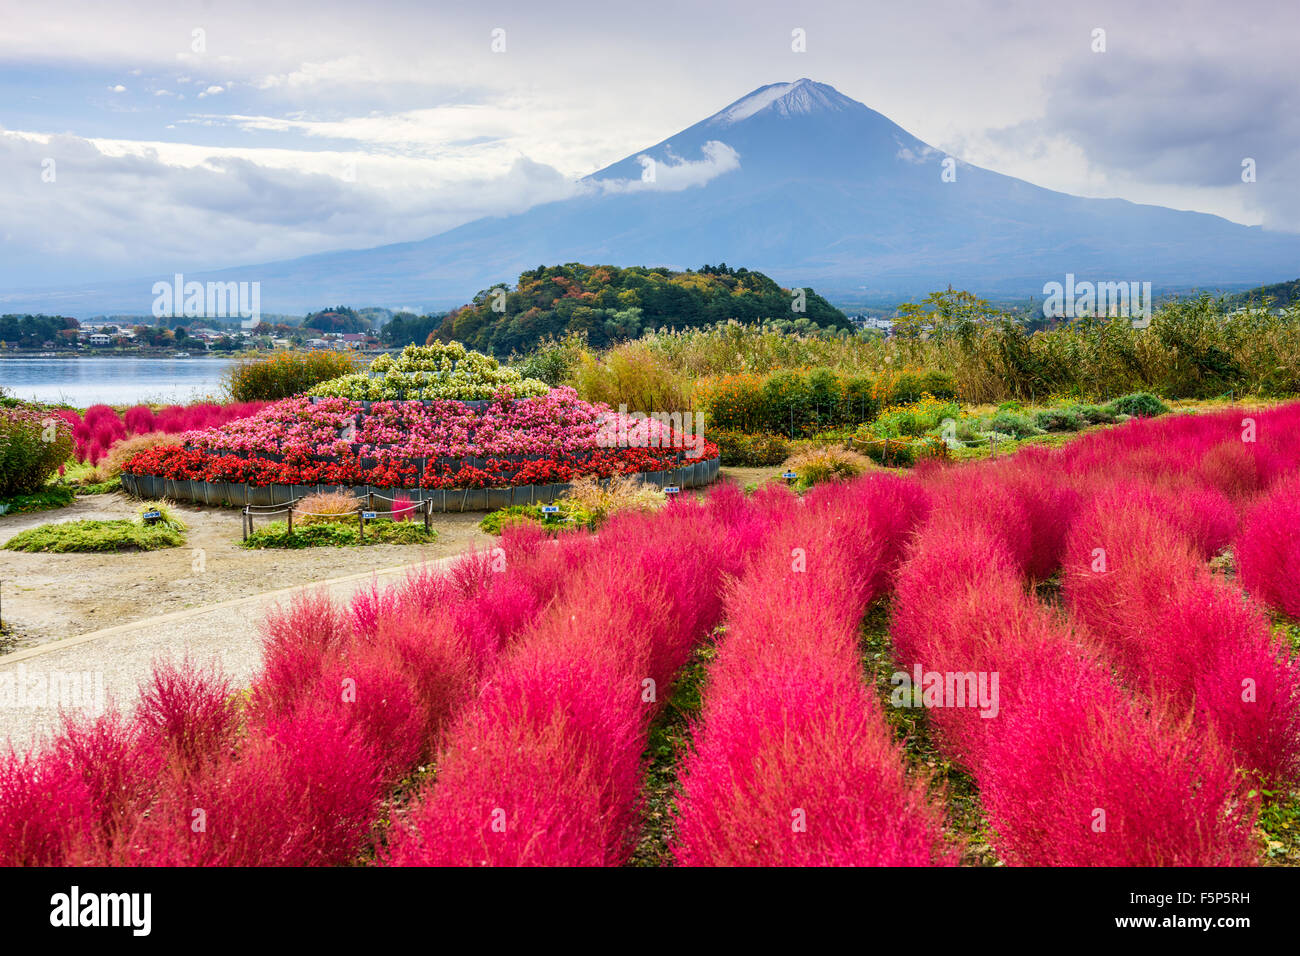 Fuji Mountain, Japan with kokia bushes at Oishi Park. - Stock Image